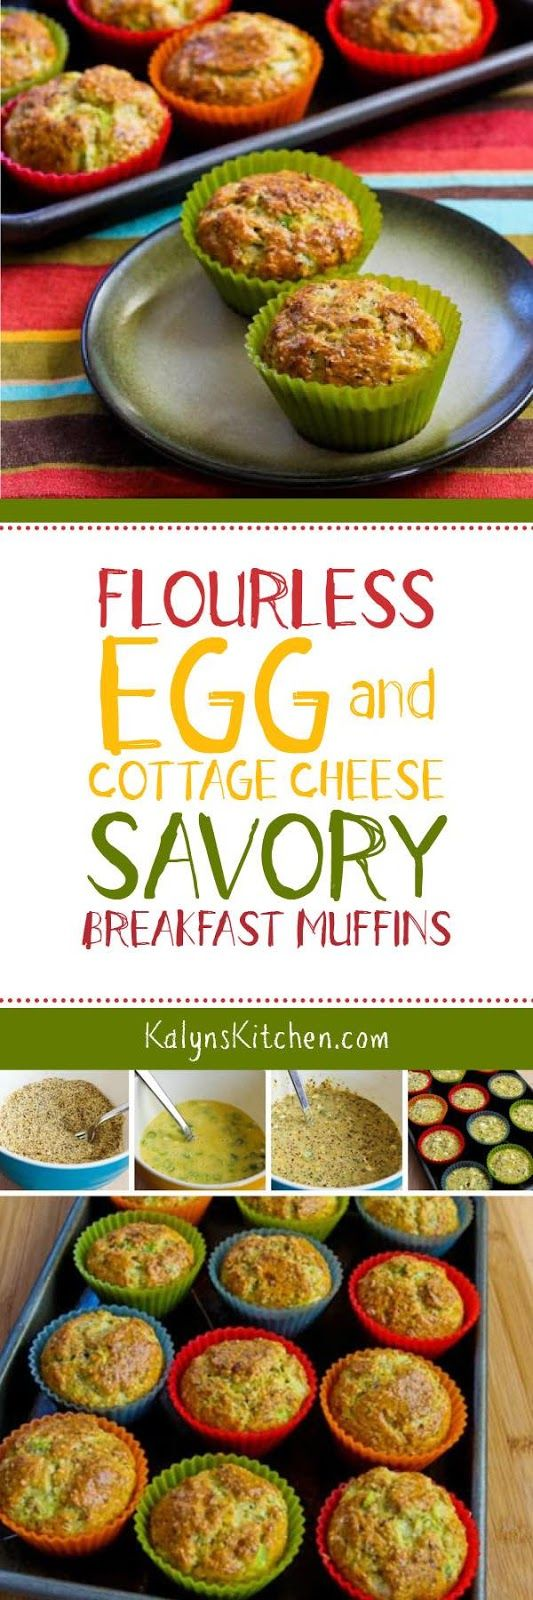 Flourless Egg and Cottage Cheese Savory Breakfast Muffins are low-carb ...